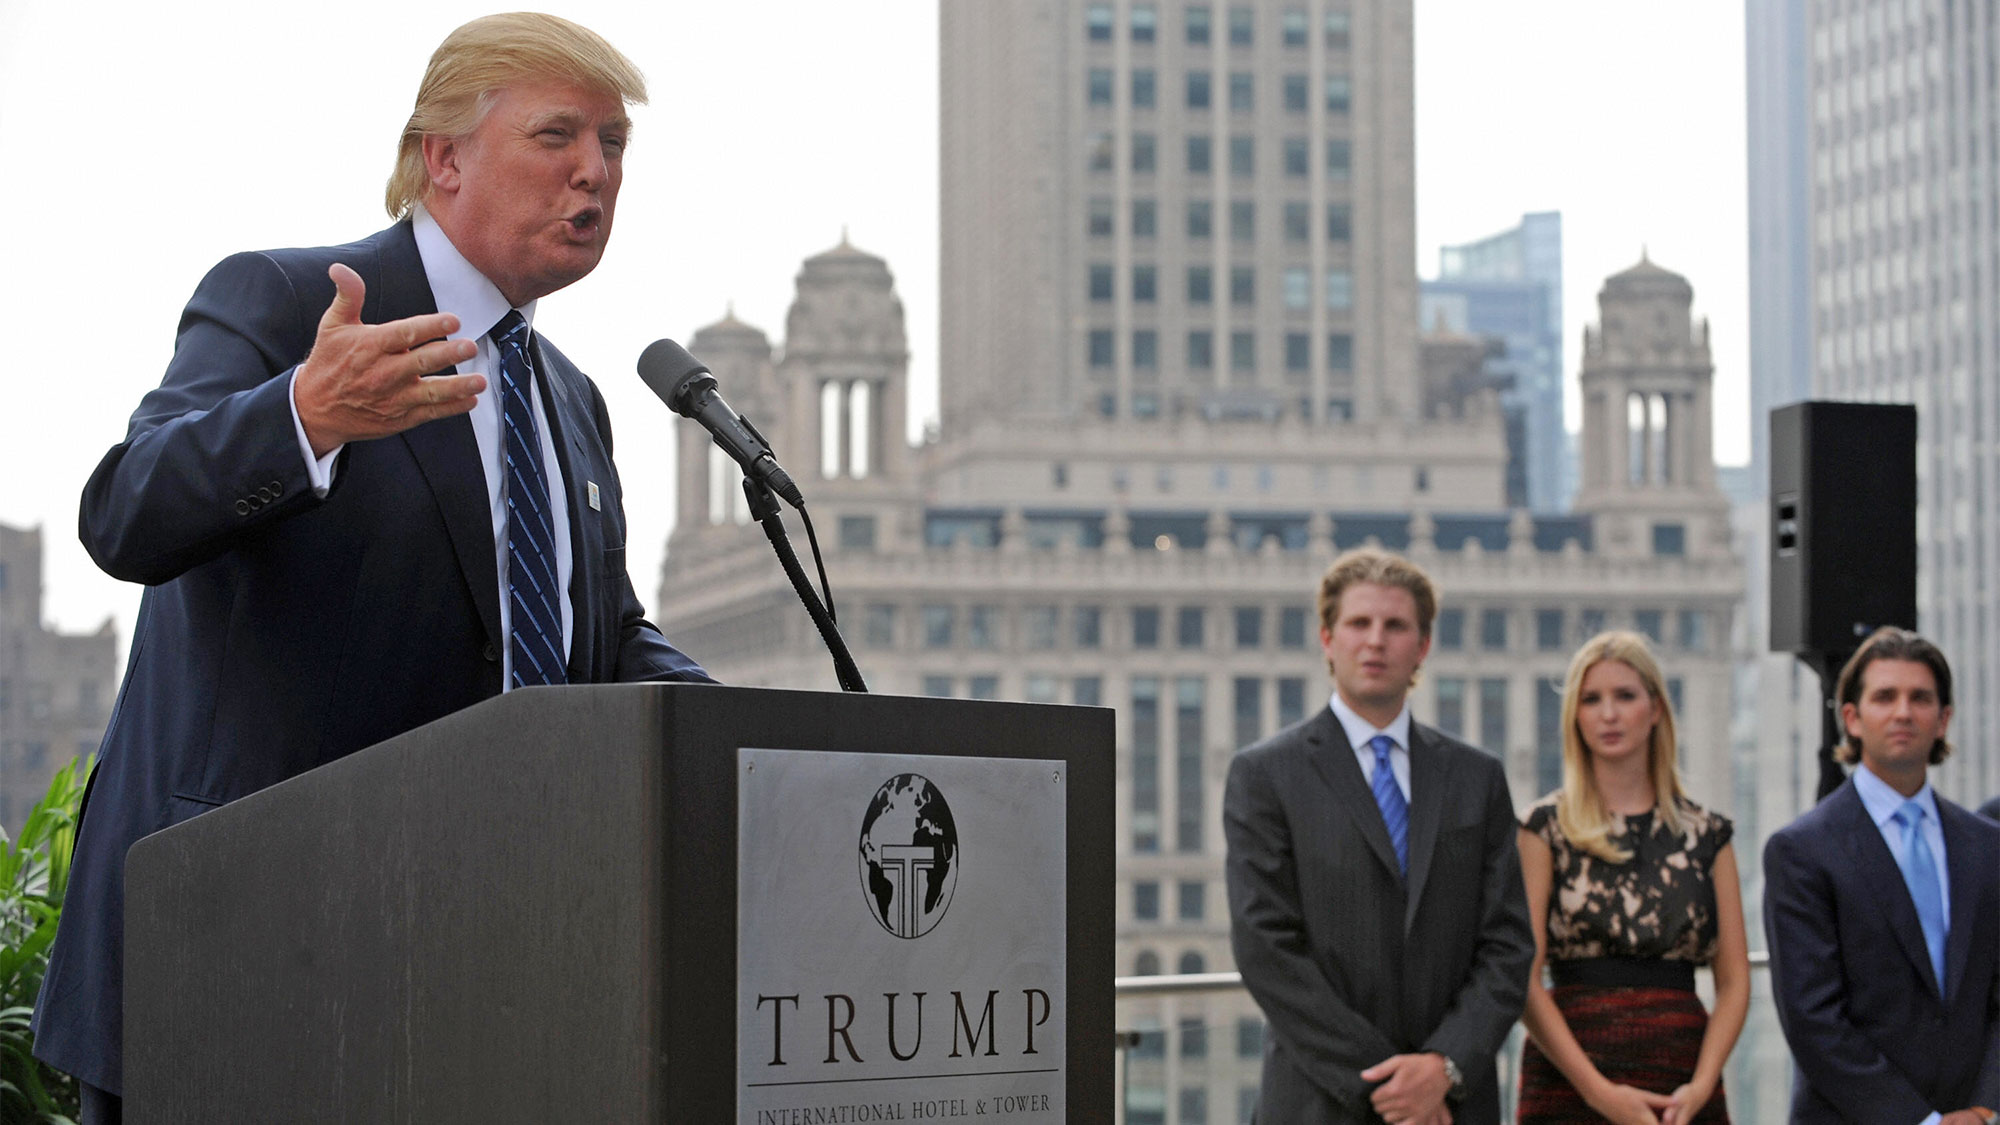 trump-hotel-and-tower-podium.jpg